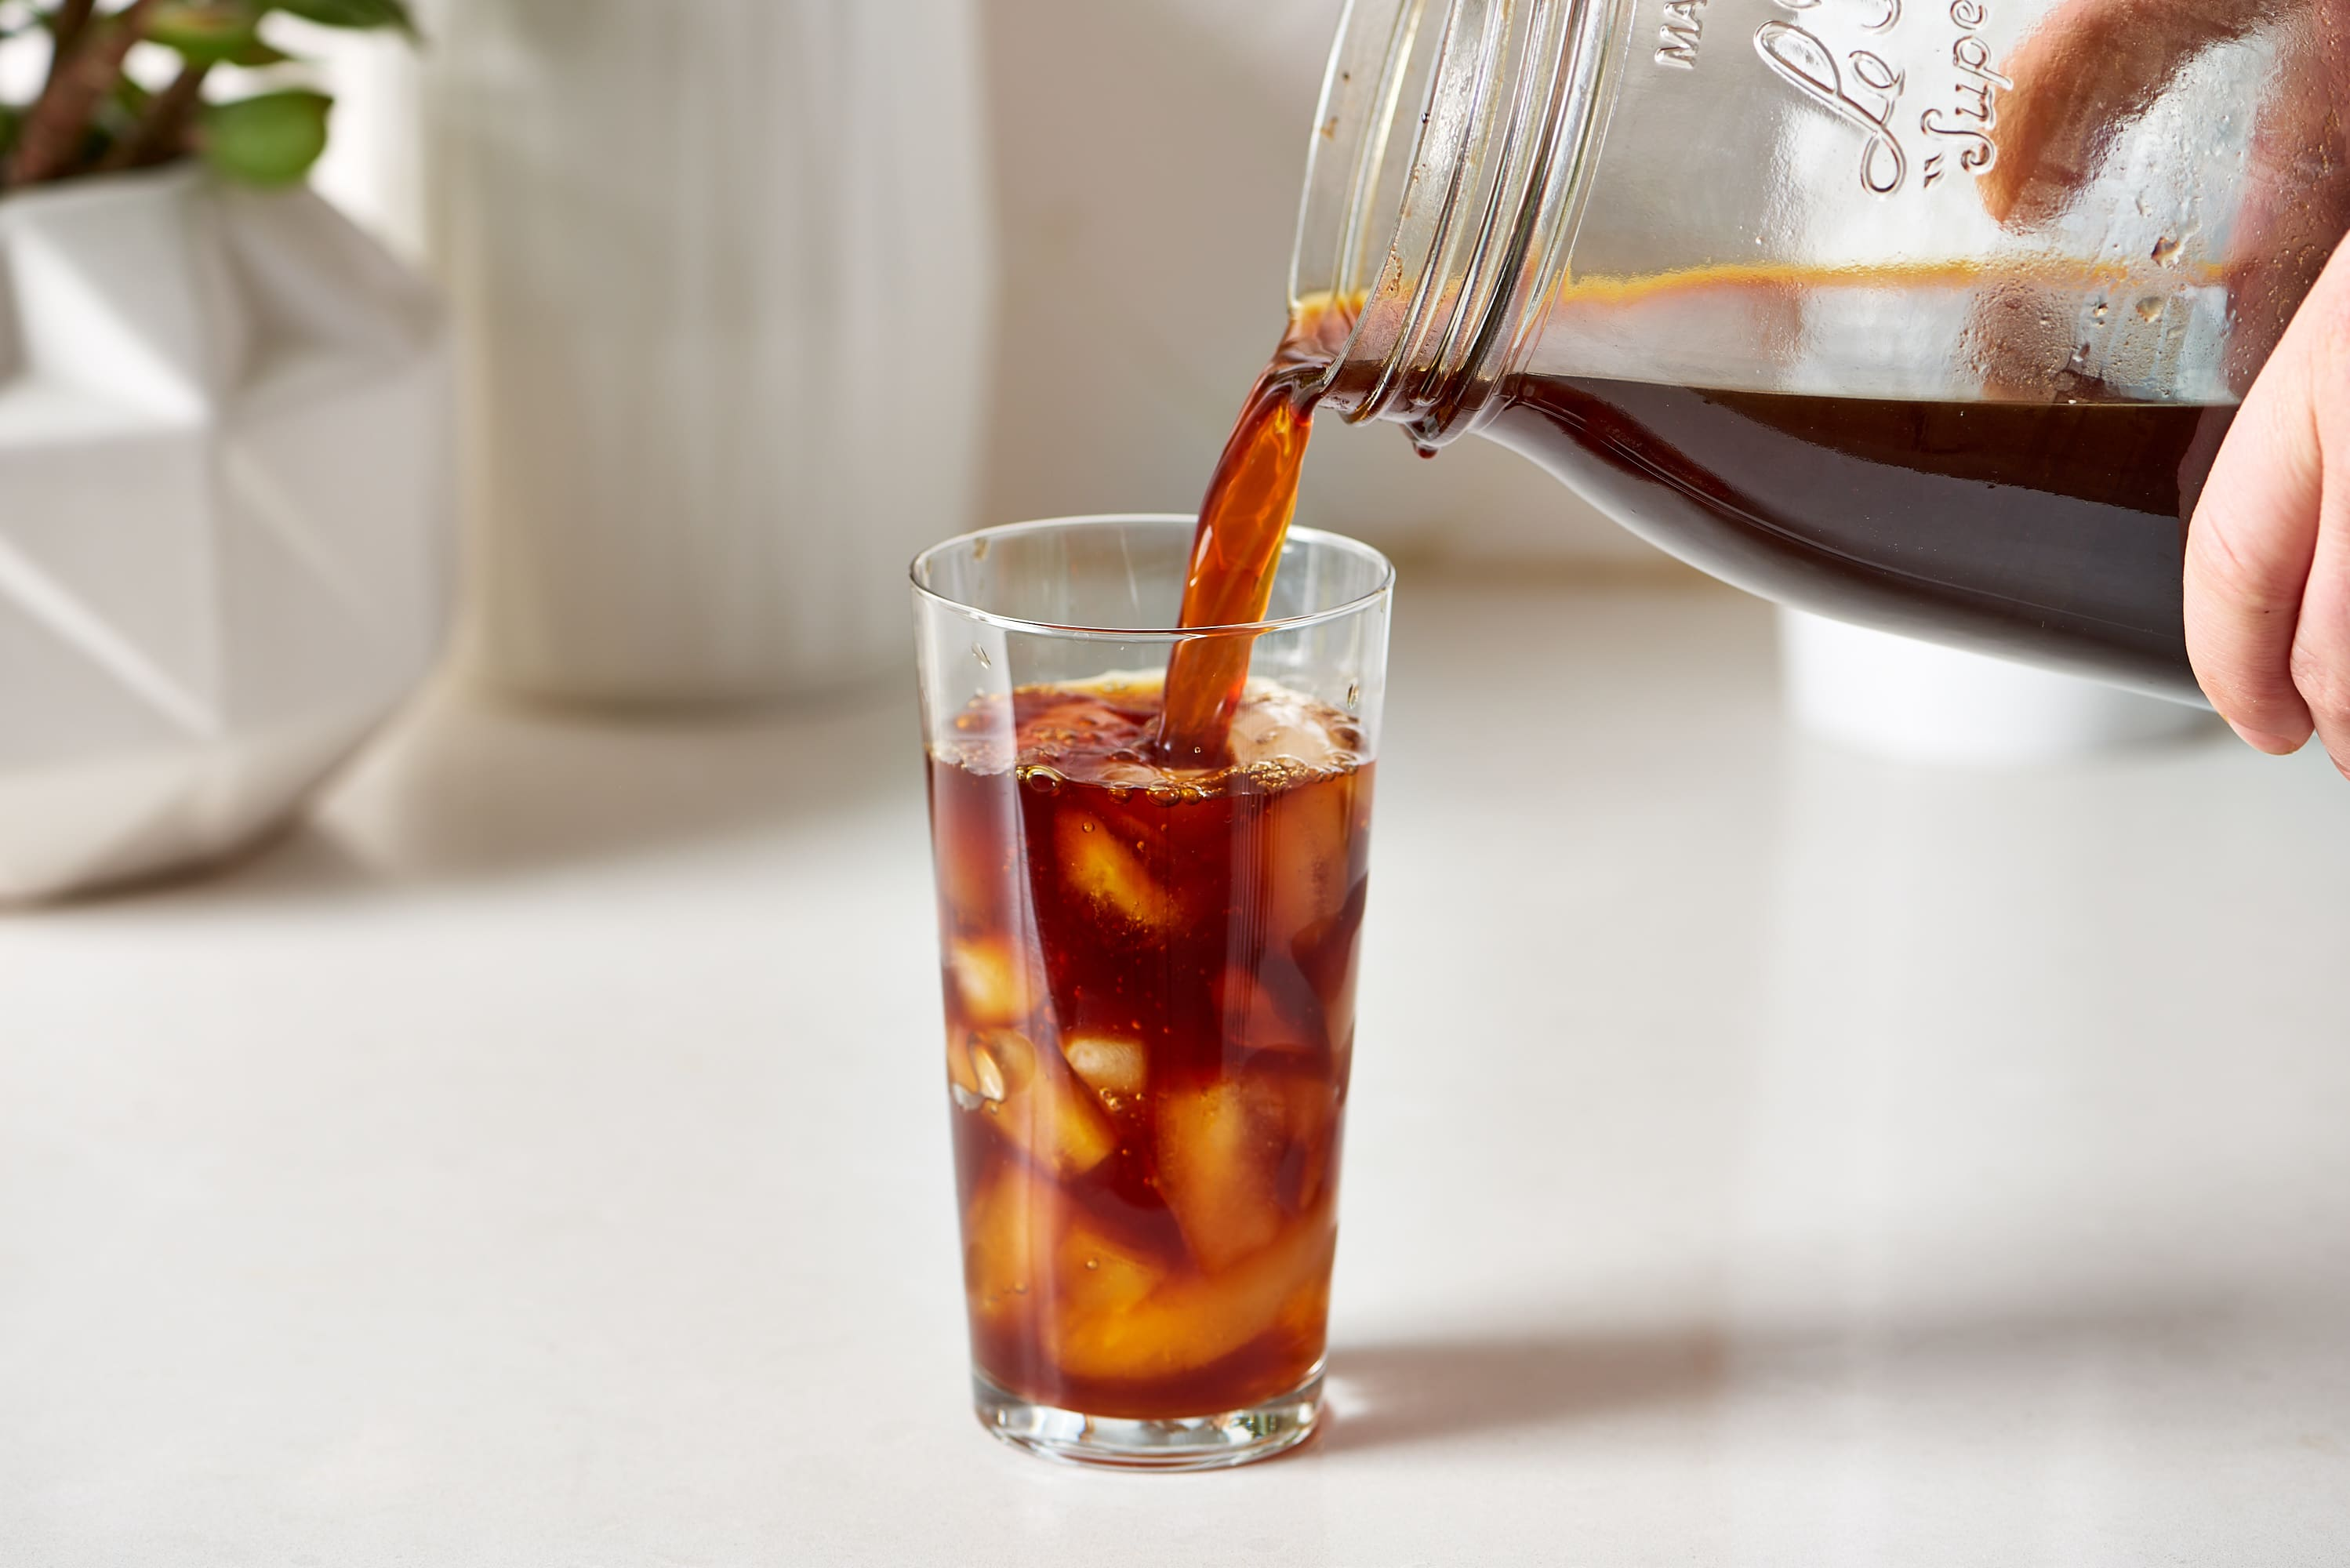 How To Make Starbucks-Style Cold Brew Coffee at Home: gallery image 8